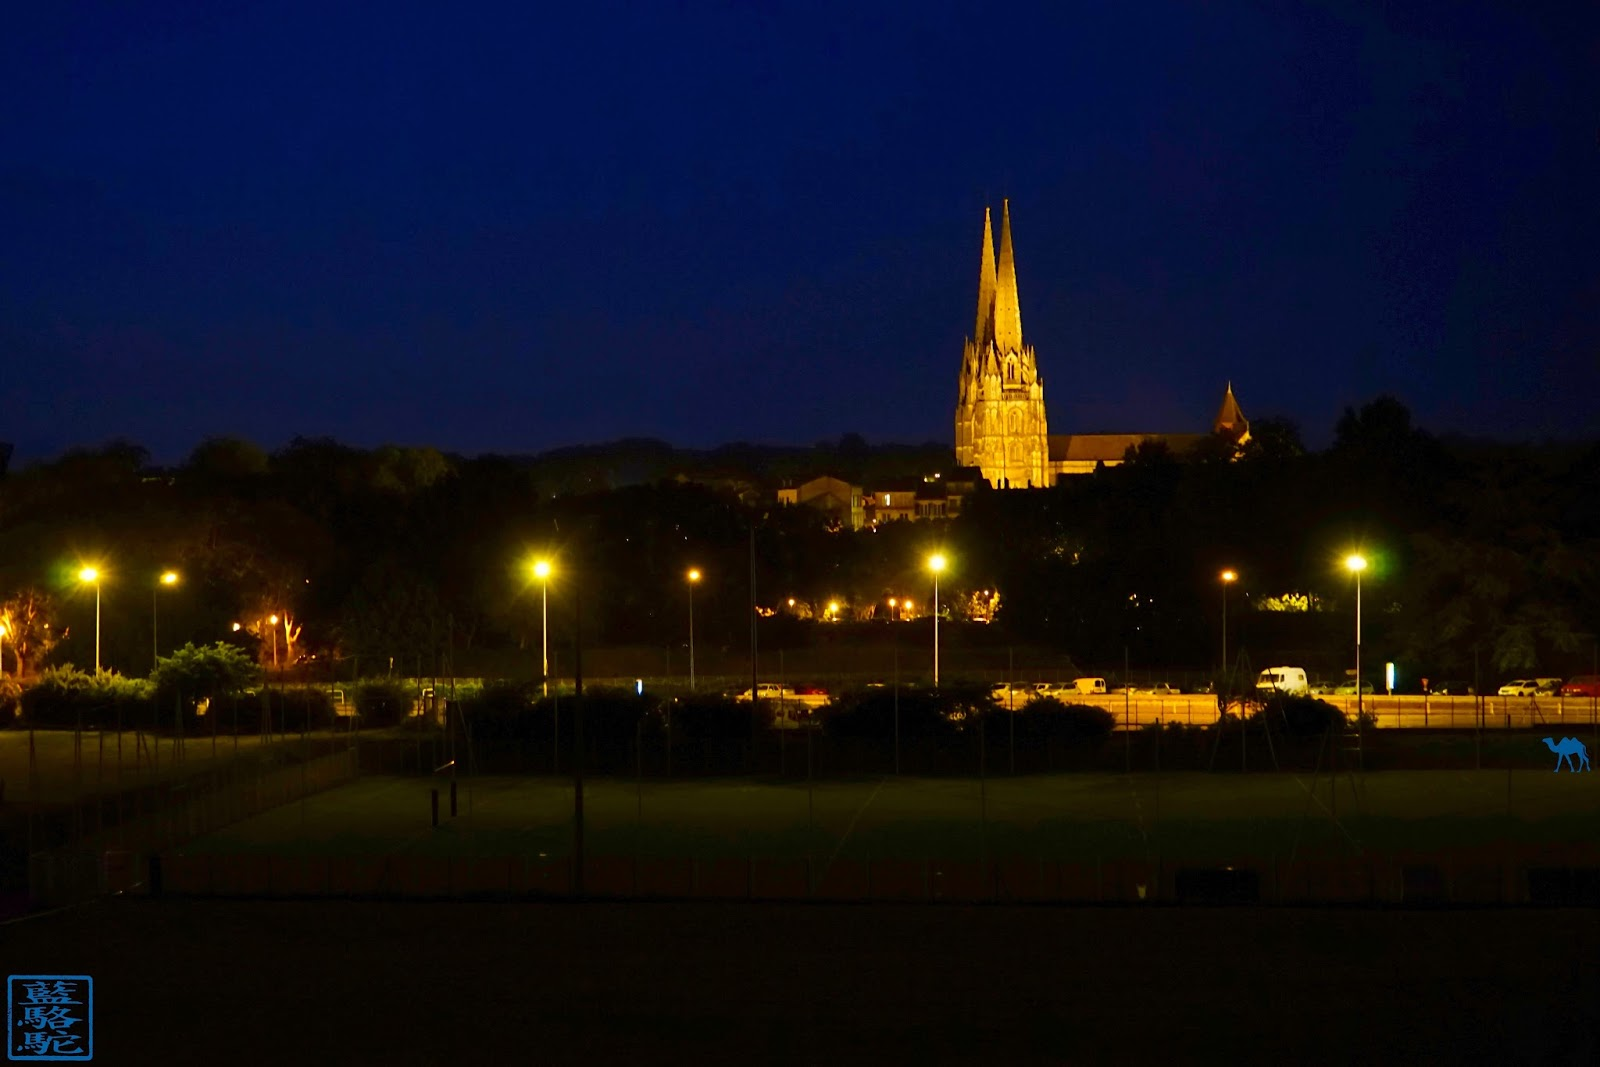 Le Chameau Bleu - Blog Voyage Bayonne France - Cathedrale Sainte Marie By NIght